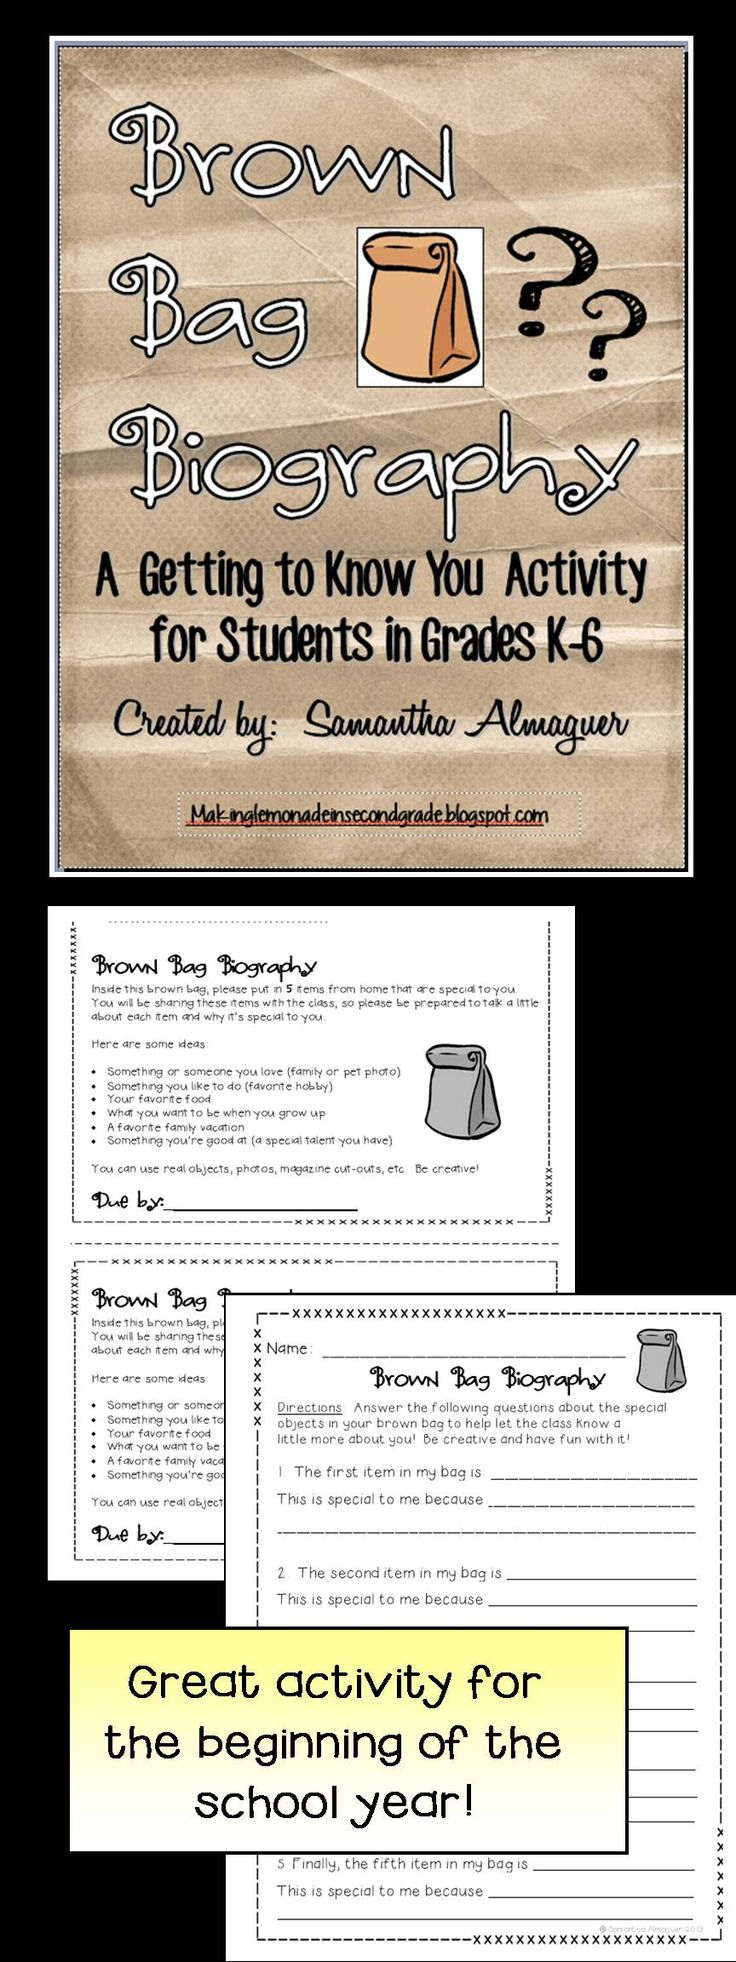 Another pinner: @Mary Powers Powers Powers Beth Chambers Heinrich Duplessis FREEBIE! This is a great little activity for the first few weeks of school! Copy, cut, and staple to a brown bag for your students to take home. Students fill the bag with five items that help to describe who they are (sample ideas included). Additional page included for students to write about each item and why it's special to them. Easy and fun getting to know you activity!